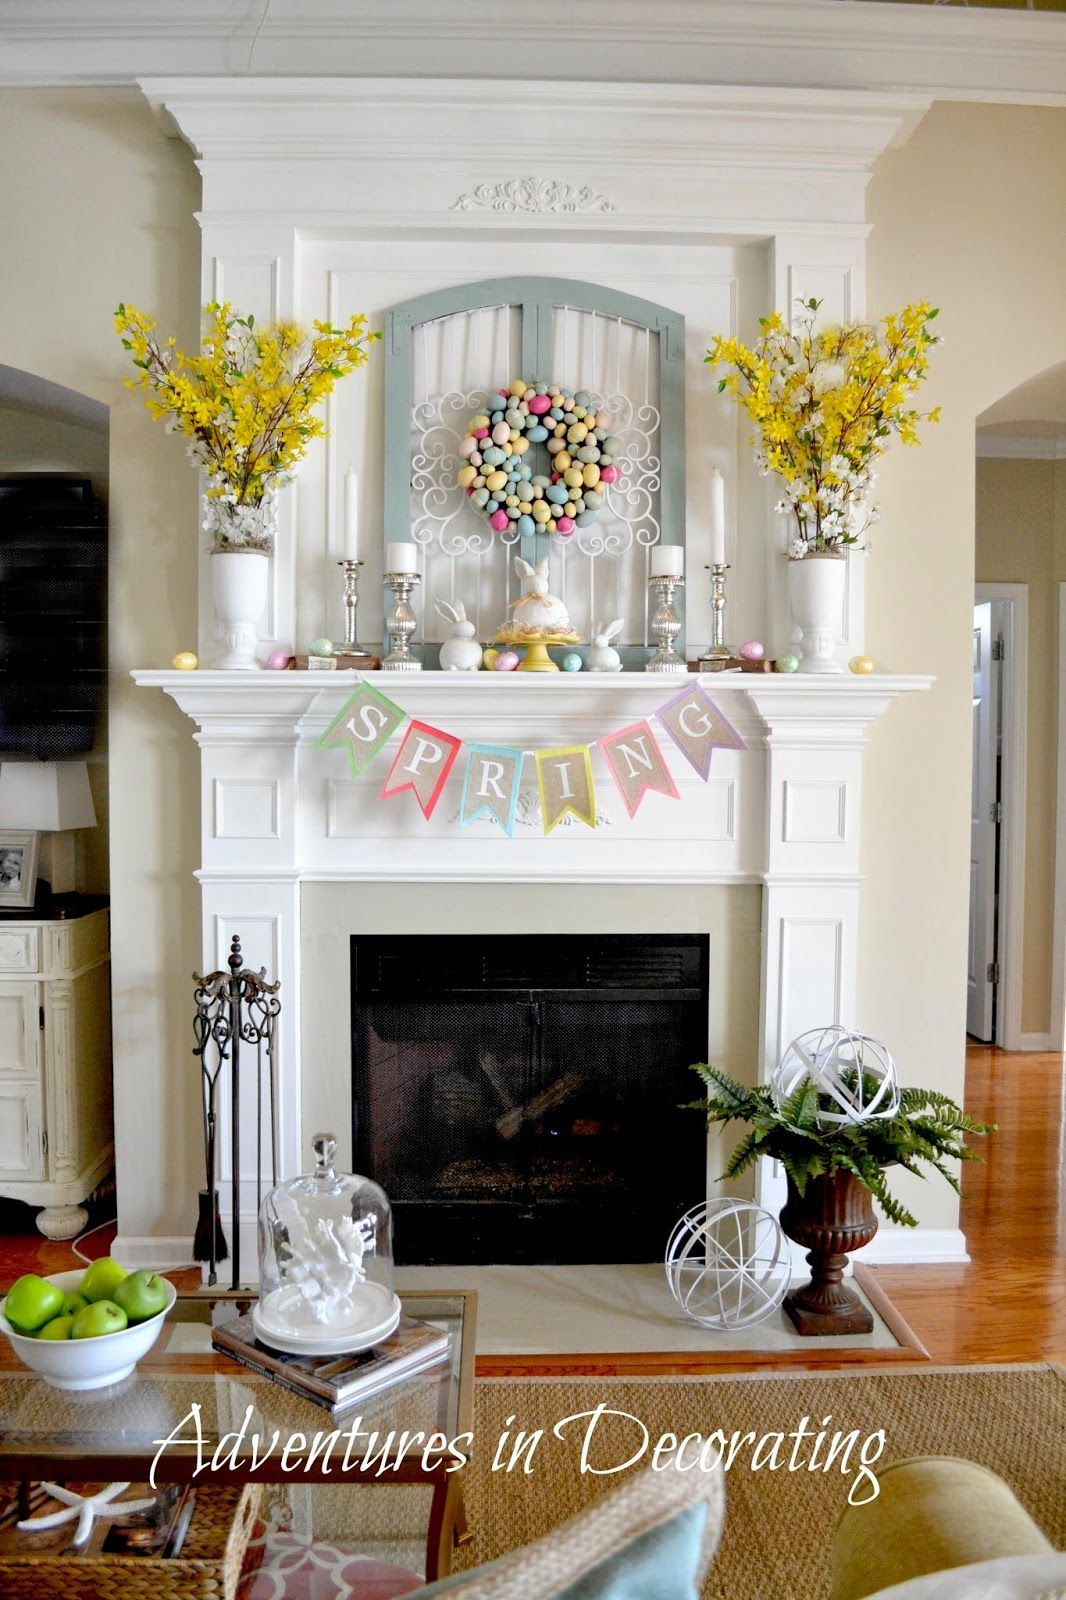 Adventures In Decorating Styling Our Spring Mantel Spring Home Decor Spring Easter Decor Diy Easter Decorations